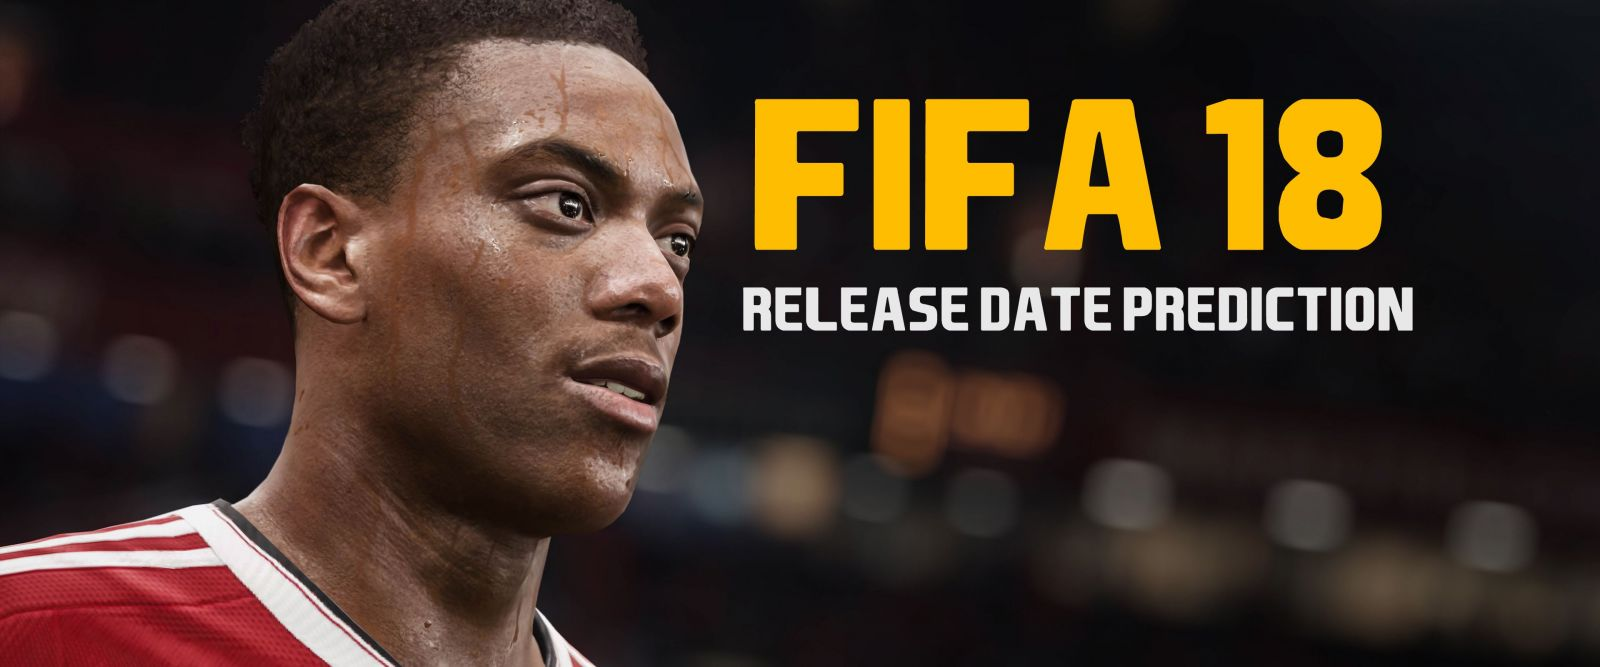 FIFA 18 Release Date Prediction